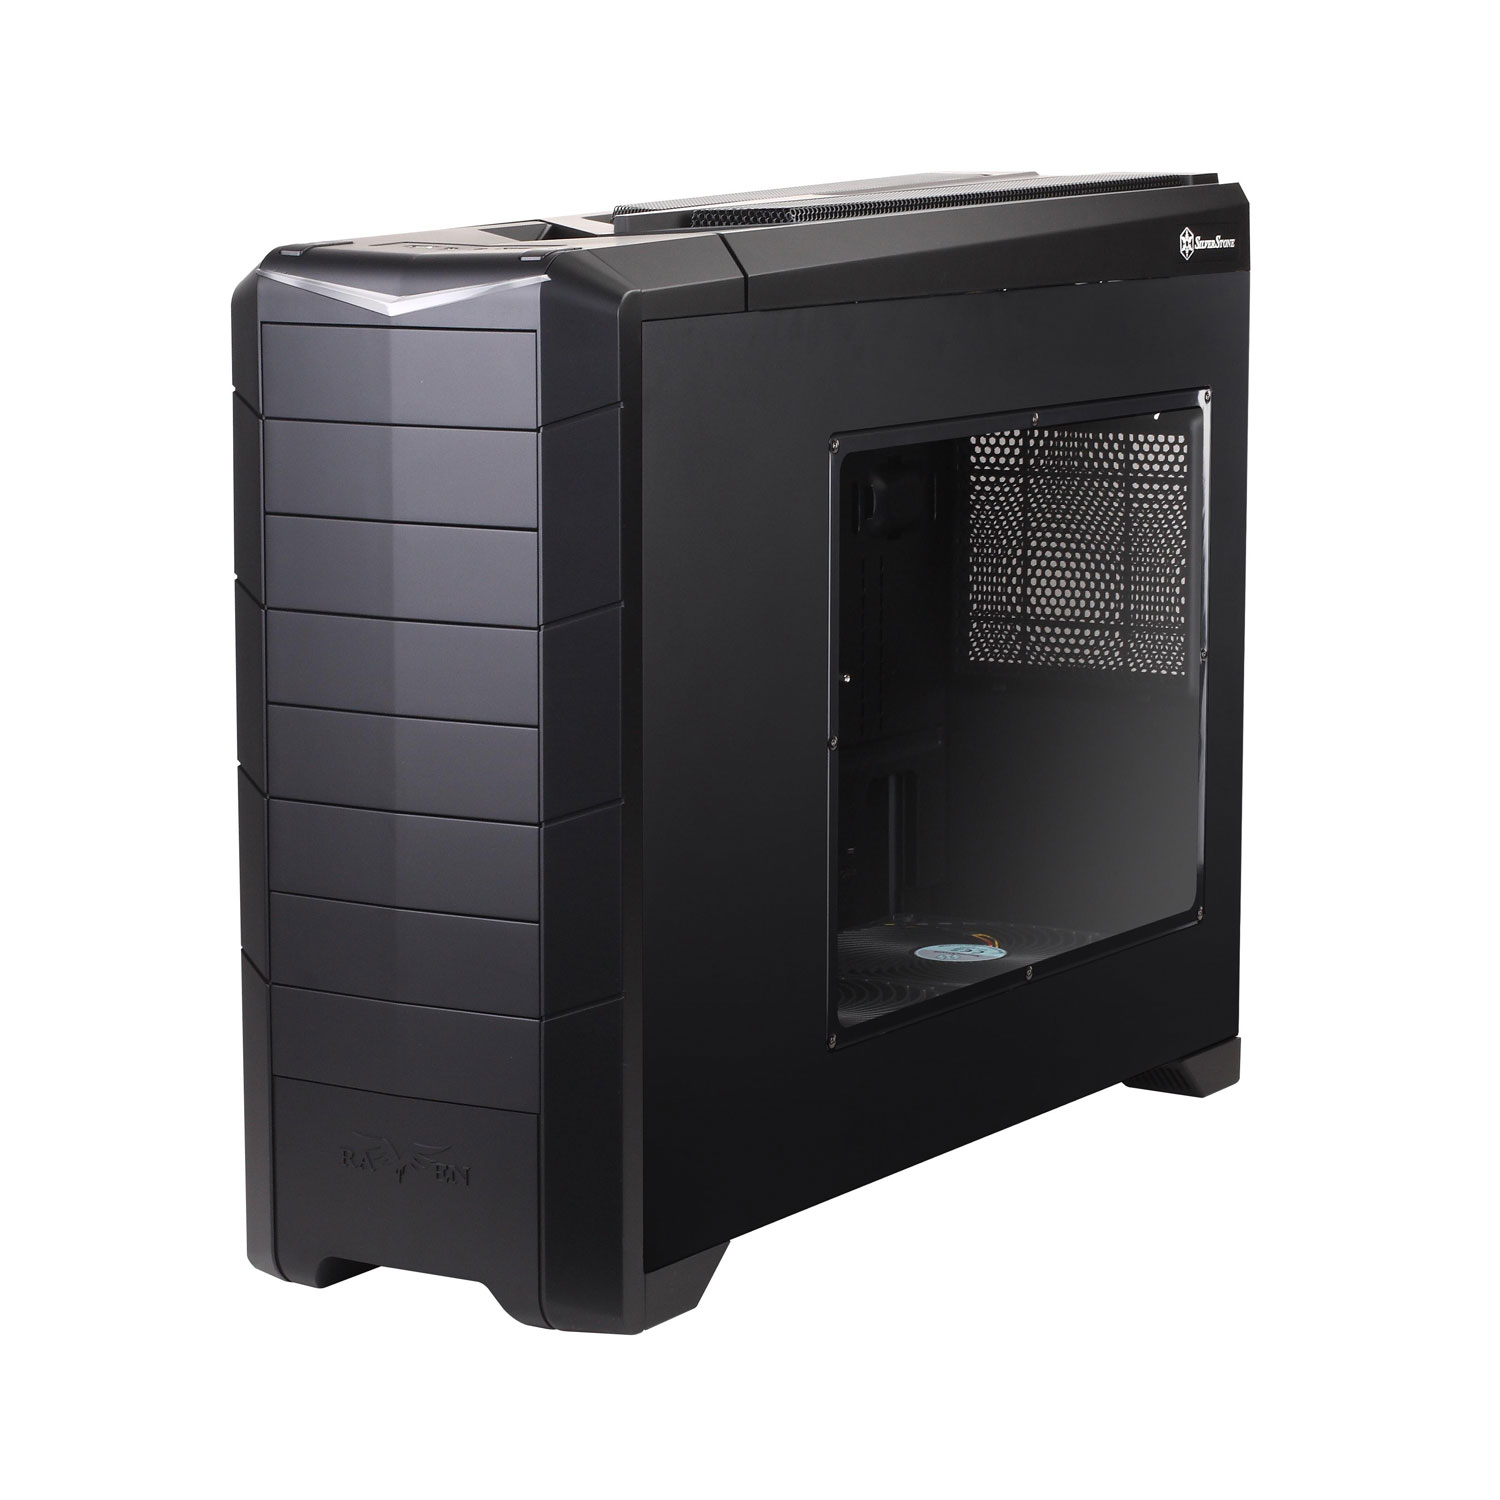 silverstone raven rv02 e usb 3 0 edition noir bo tier pc silverstone sur. Black Bedroom Furniture Sets. Home Design Ideas